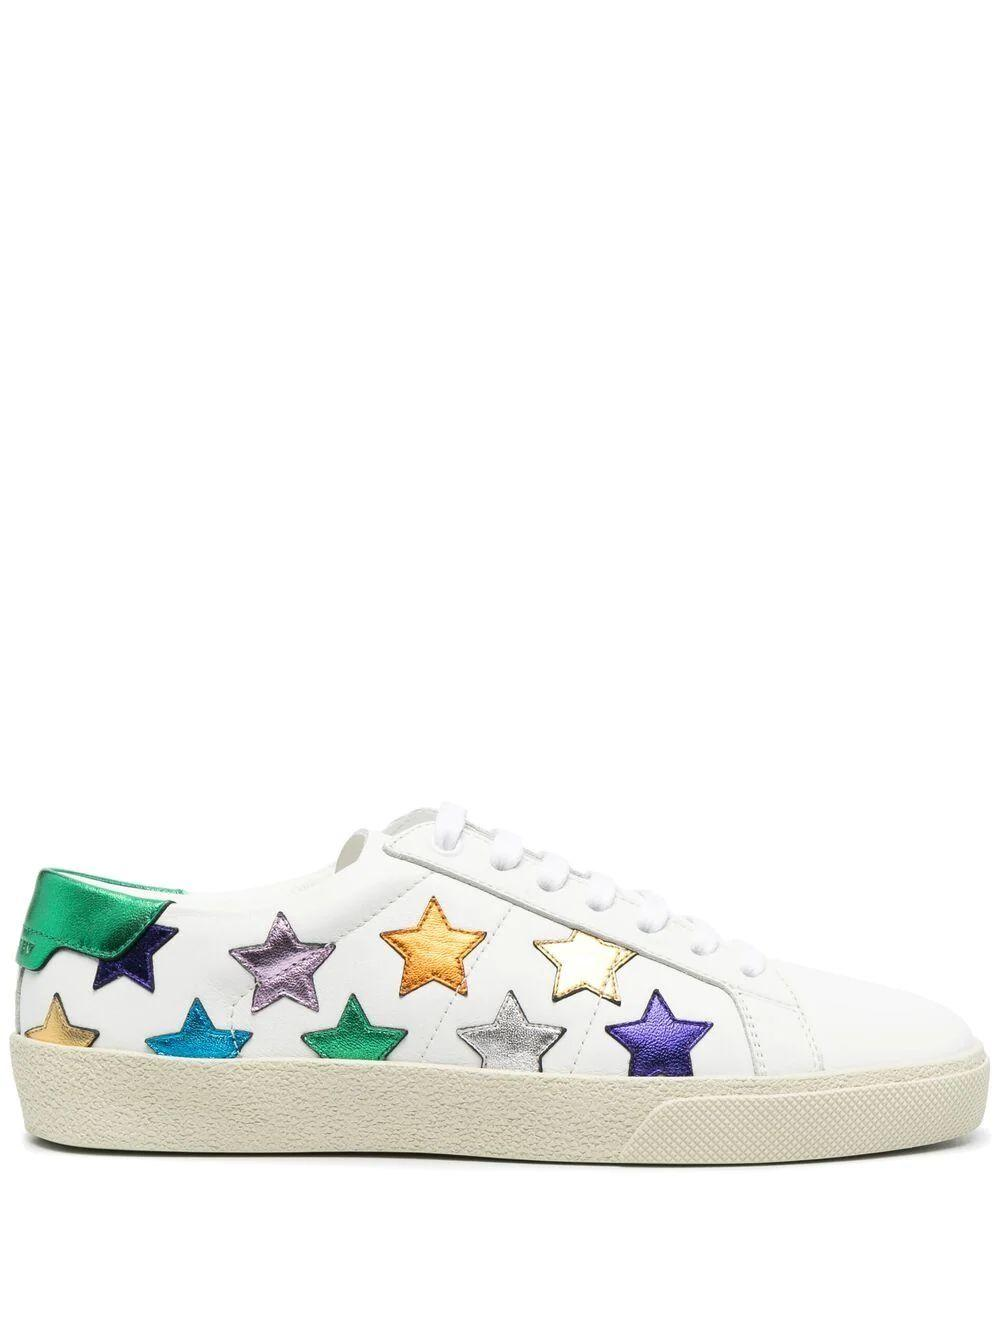 California Star Sneaker Item # 59254100NBO